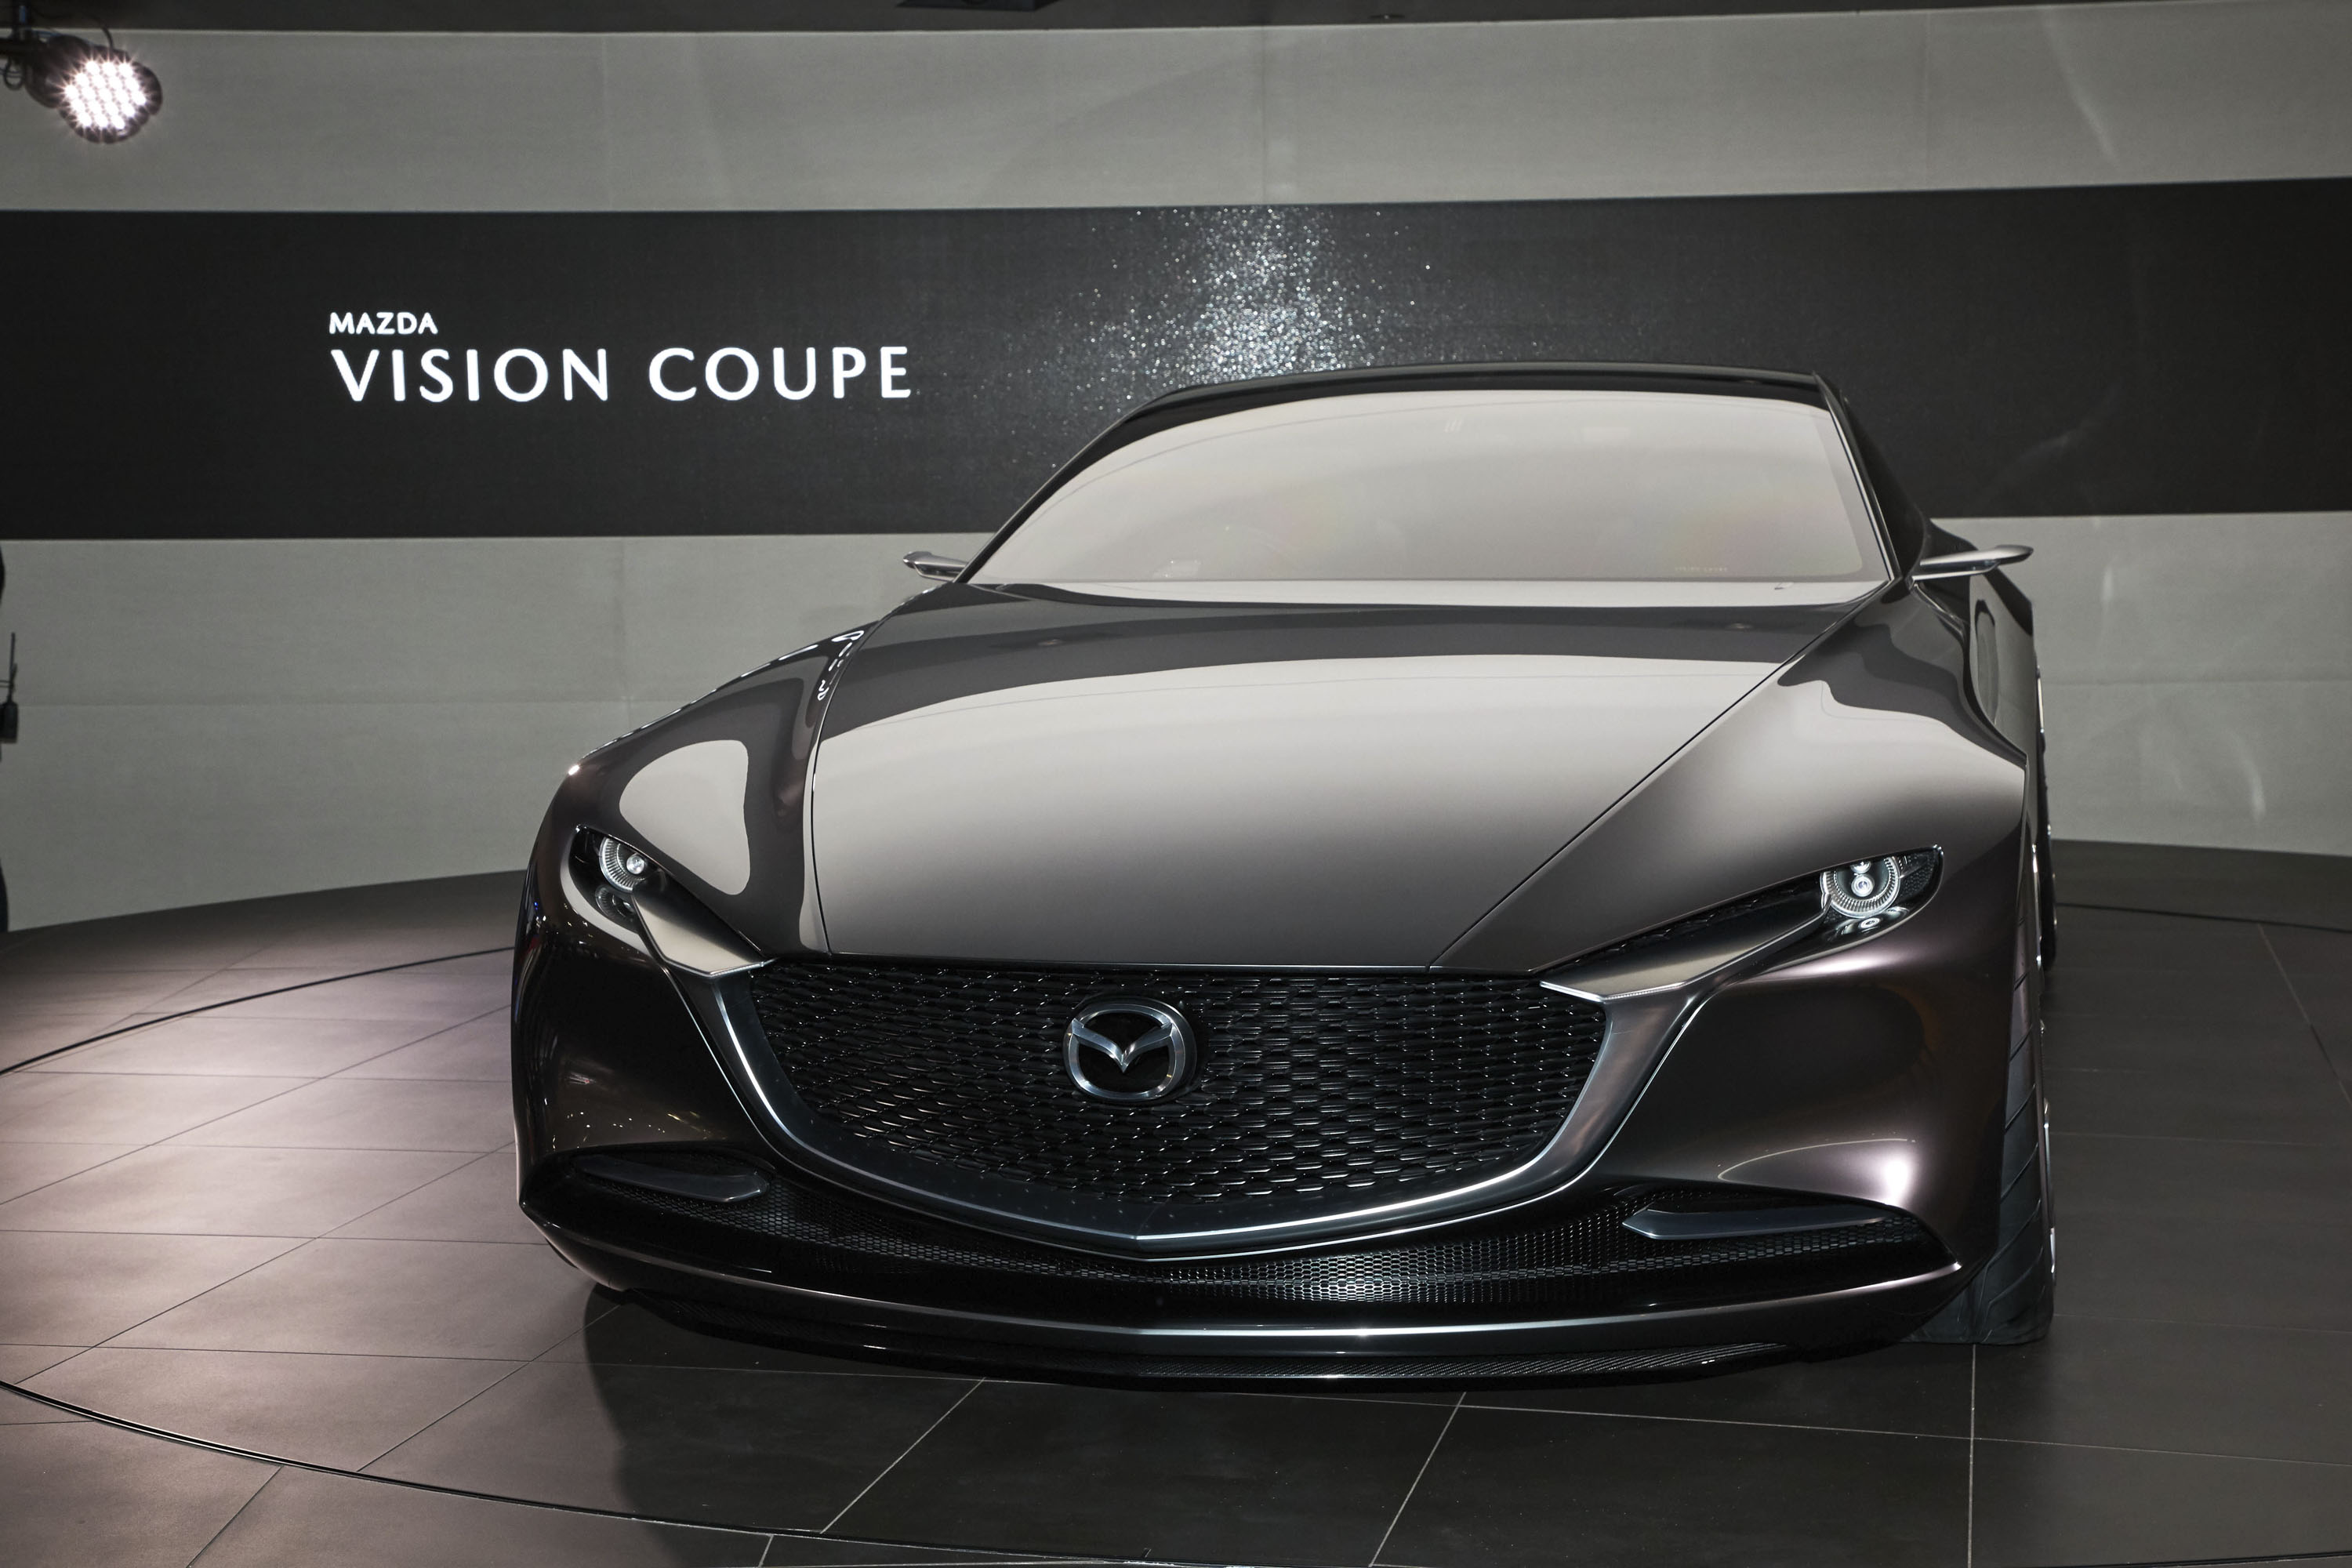 https://pictures.topspeed.com/IMG/jpg/201710/2017-mazda-vision-coupe-c-2.jpg